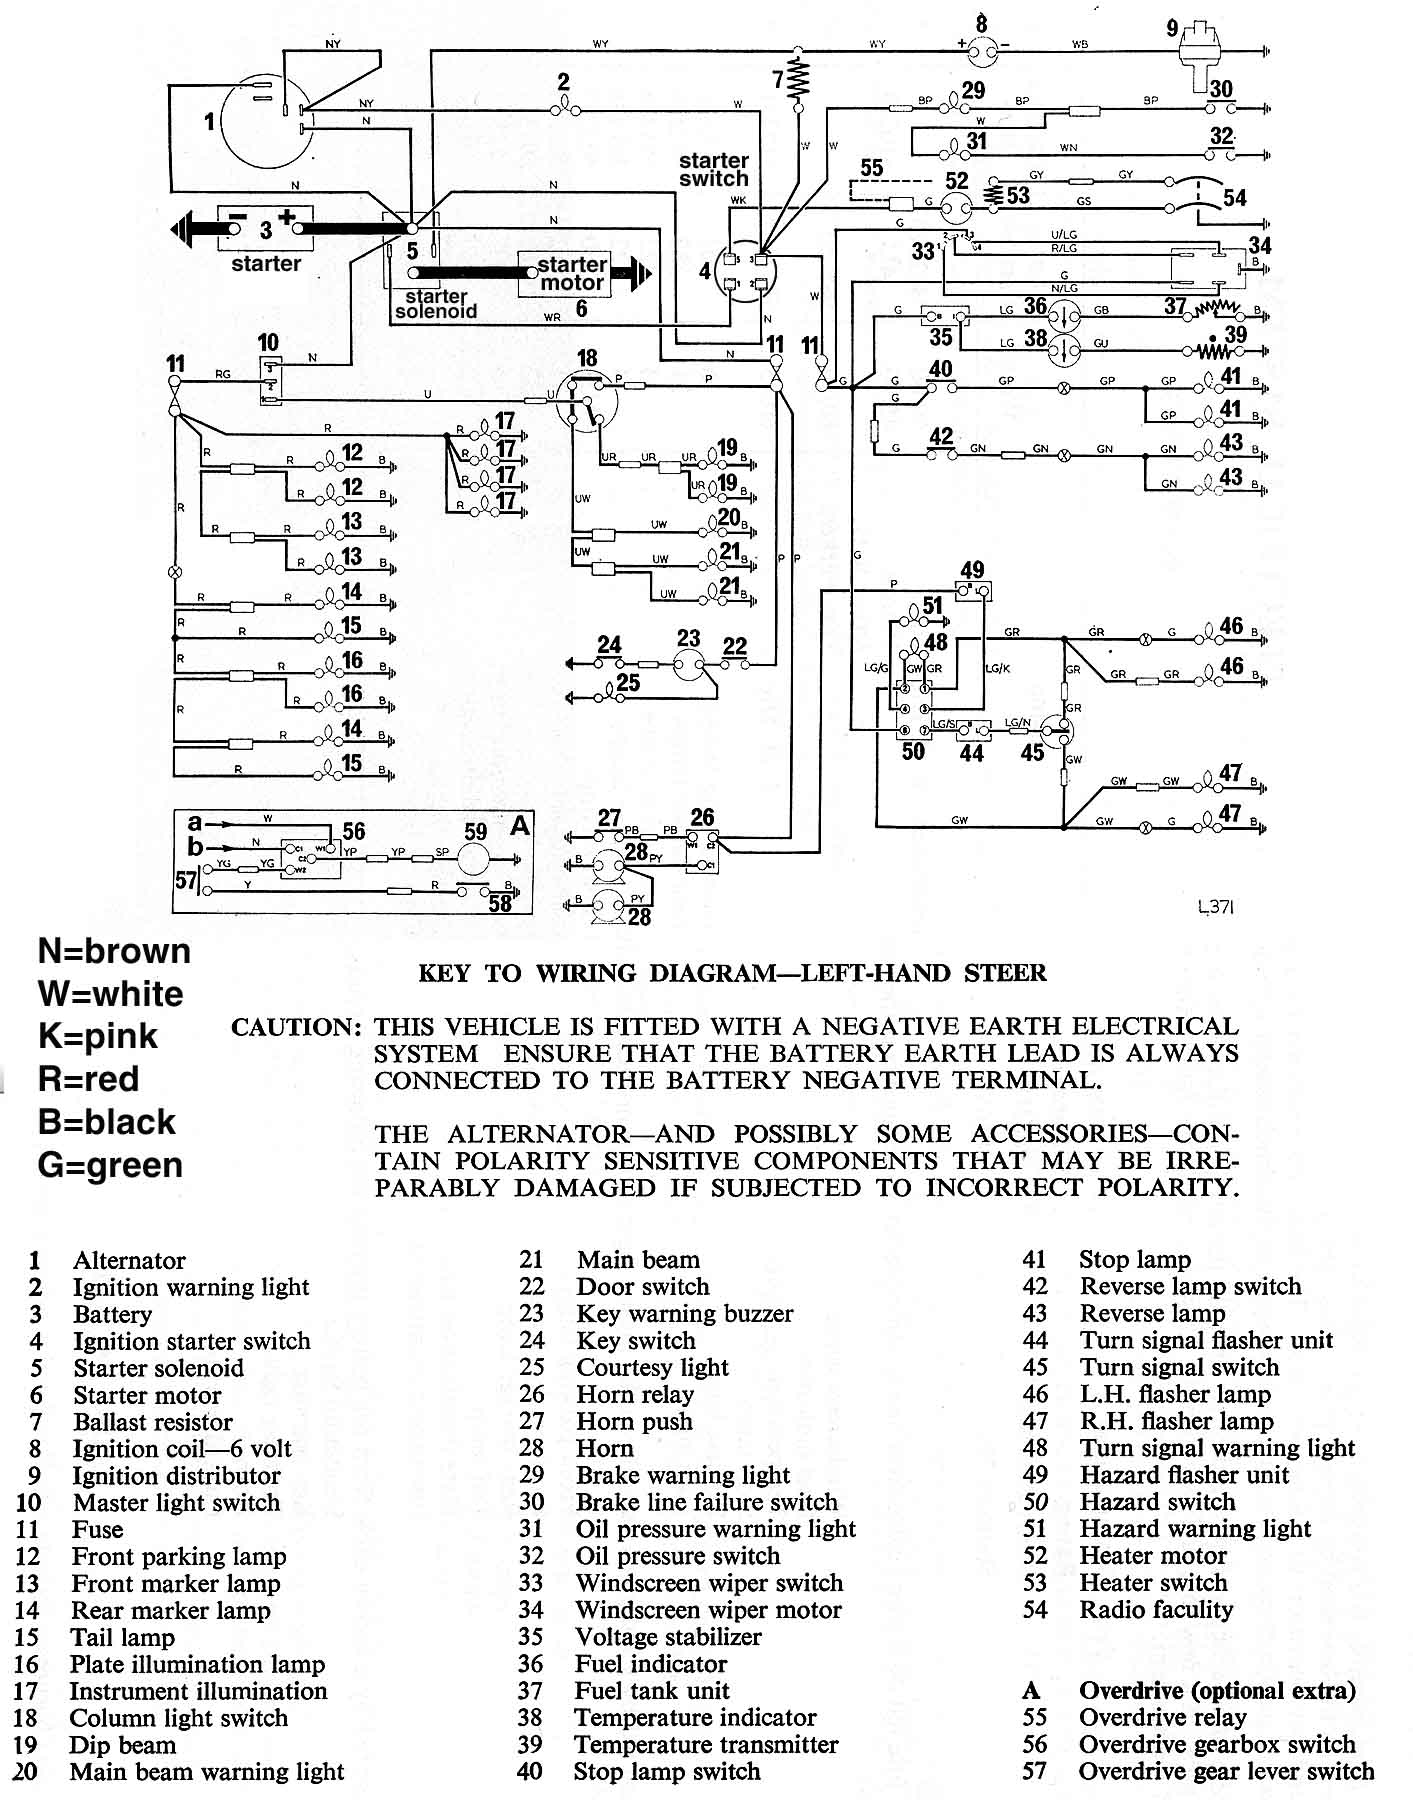 Spitfire Hazard Circuit Diagram For 69 Spitfire